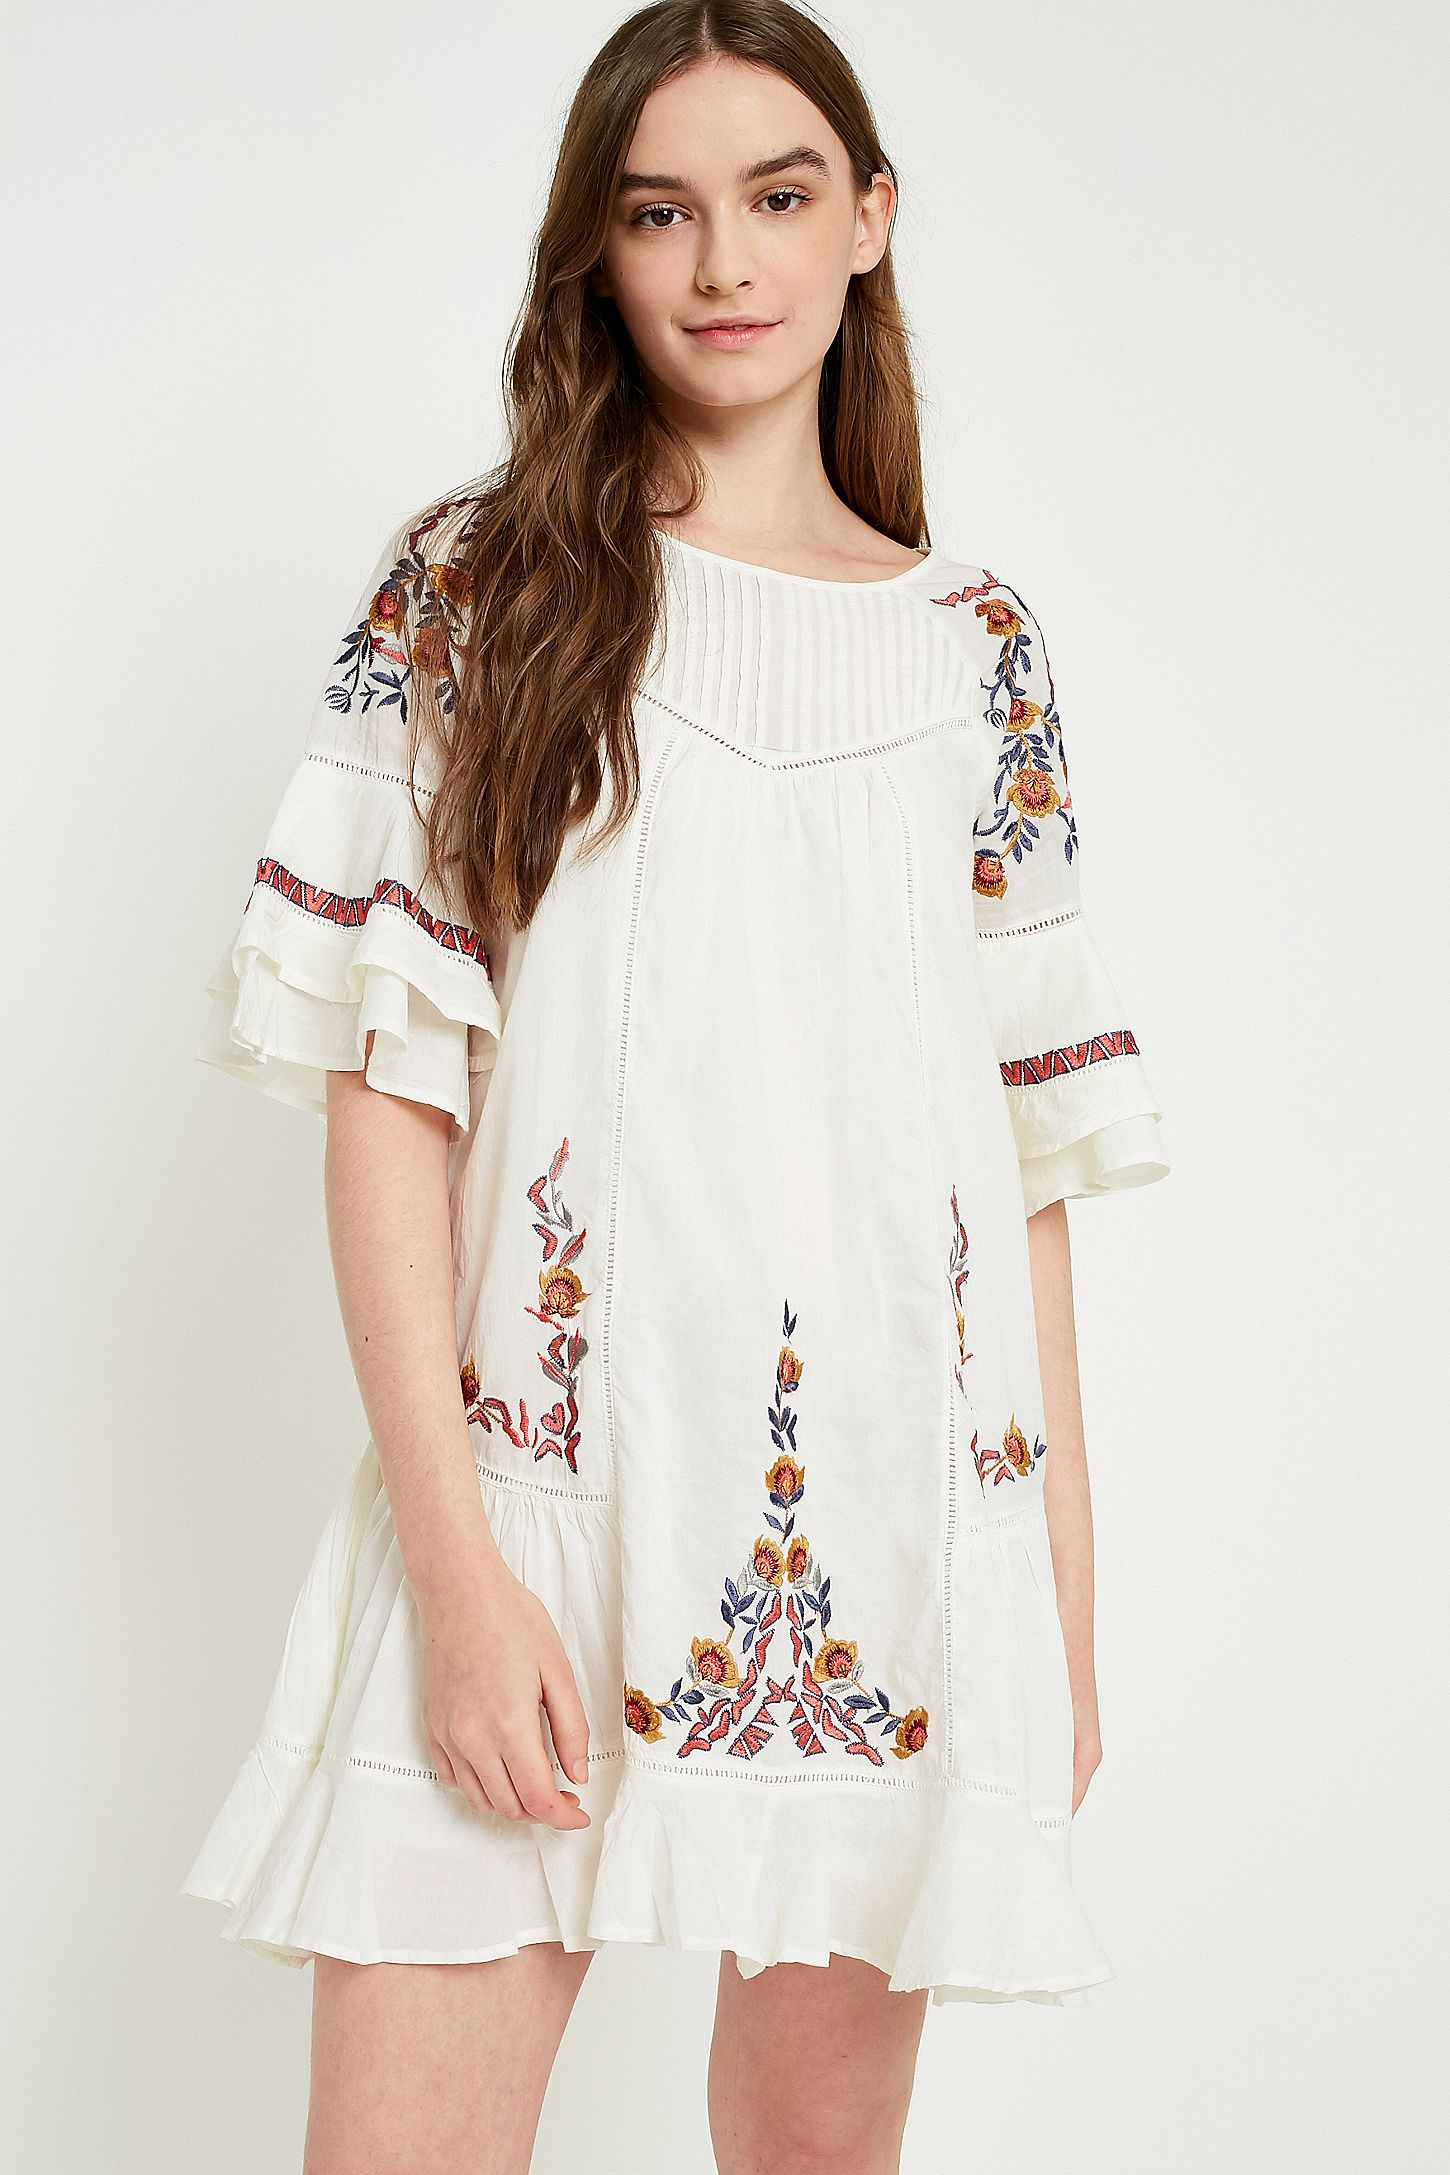 674f371274a4 Free People Pavlo Floral Embroidered Dress